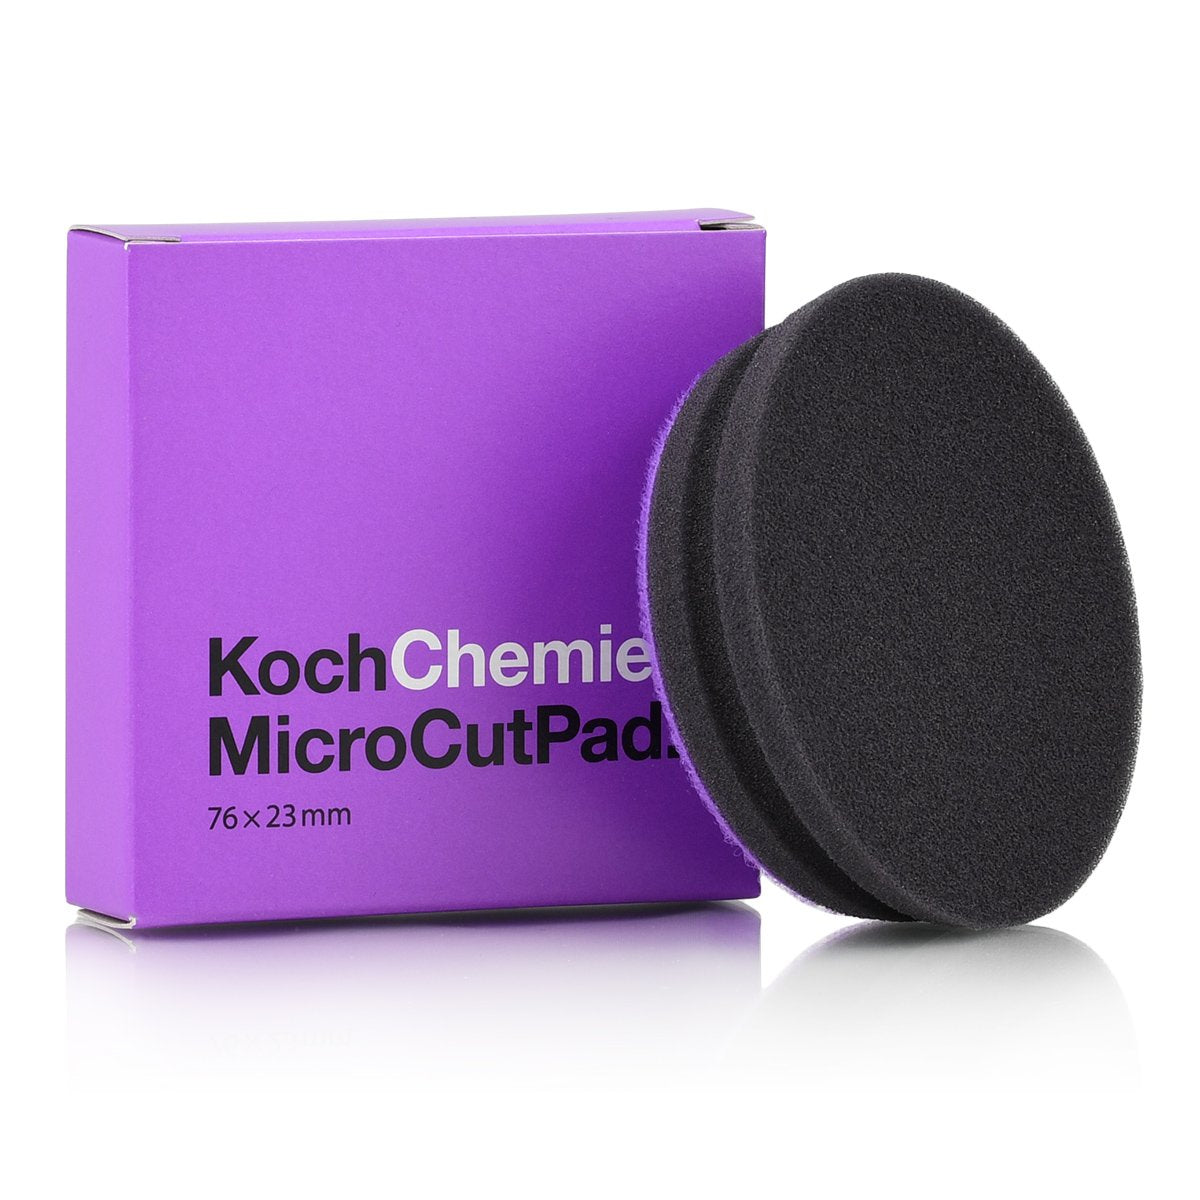 Koch Chemie Micro Cut Pad 76mm